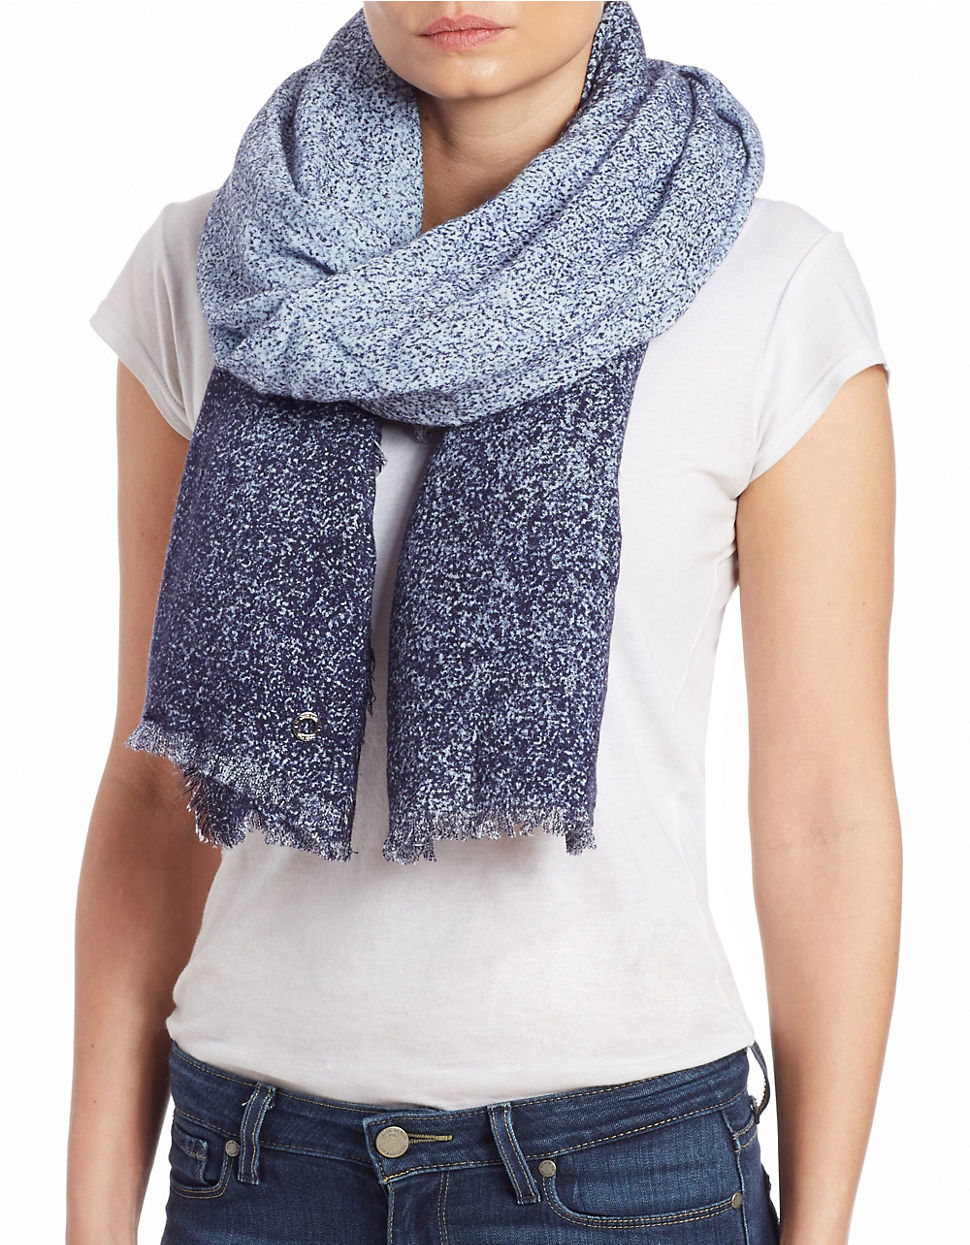 Lyst - Calvin Klein Distressed Ombre Scarf in Blue 1aeb08ae611